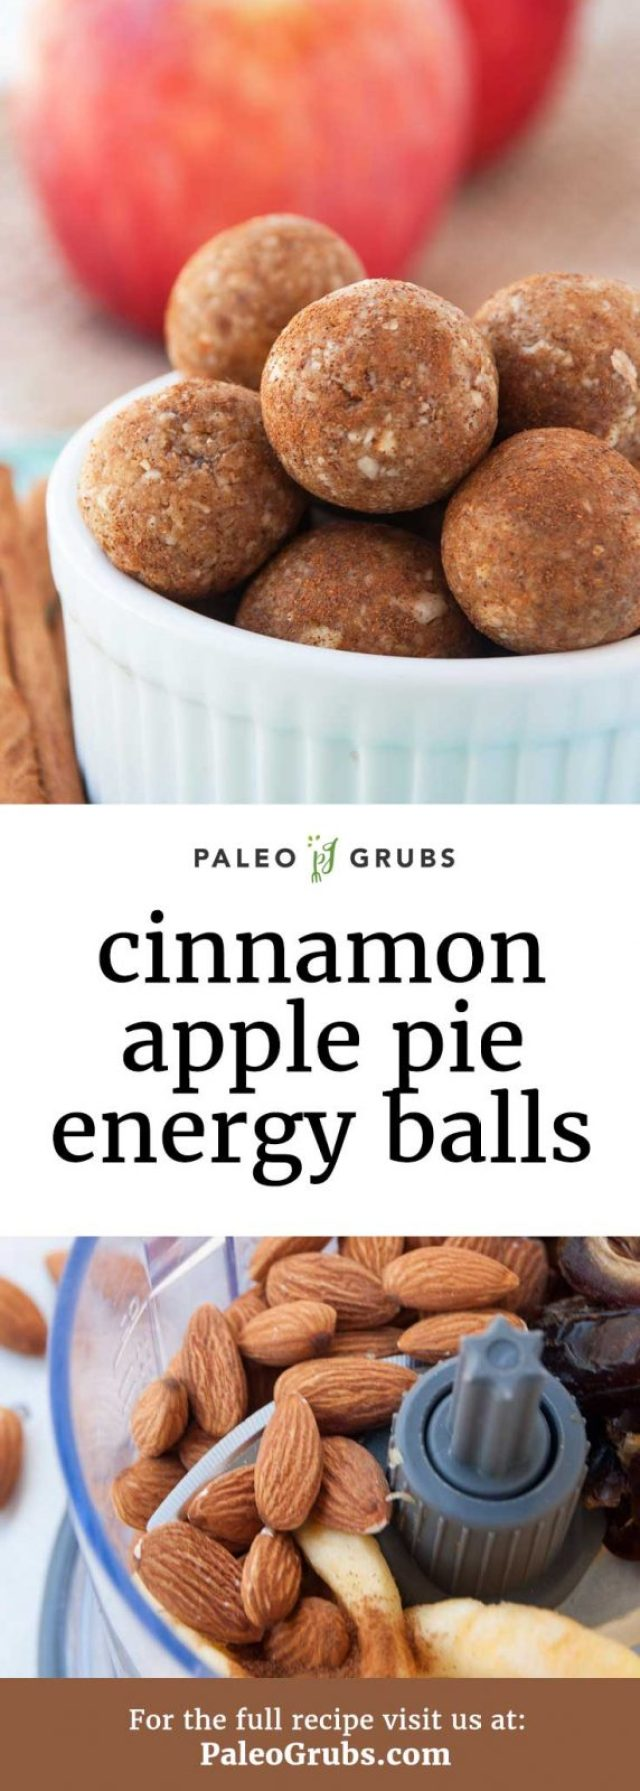 These Paleo energy balls are kind of like the most energy packed bite of the most pure apple pie essence you have ever tasted in your life! Pure apple pie bliss.